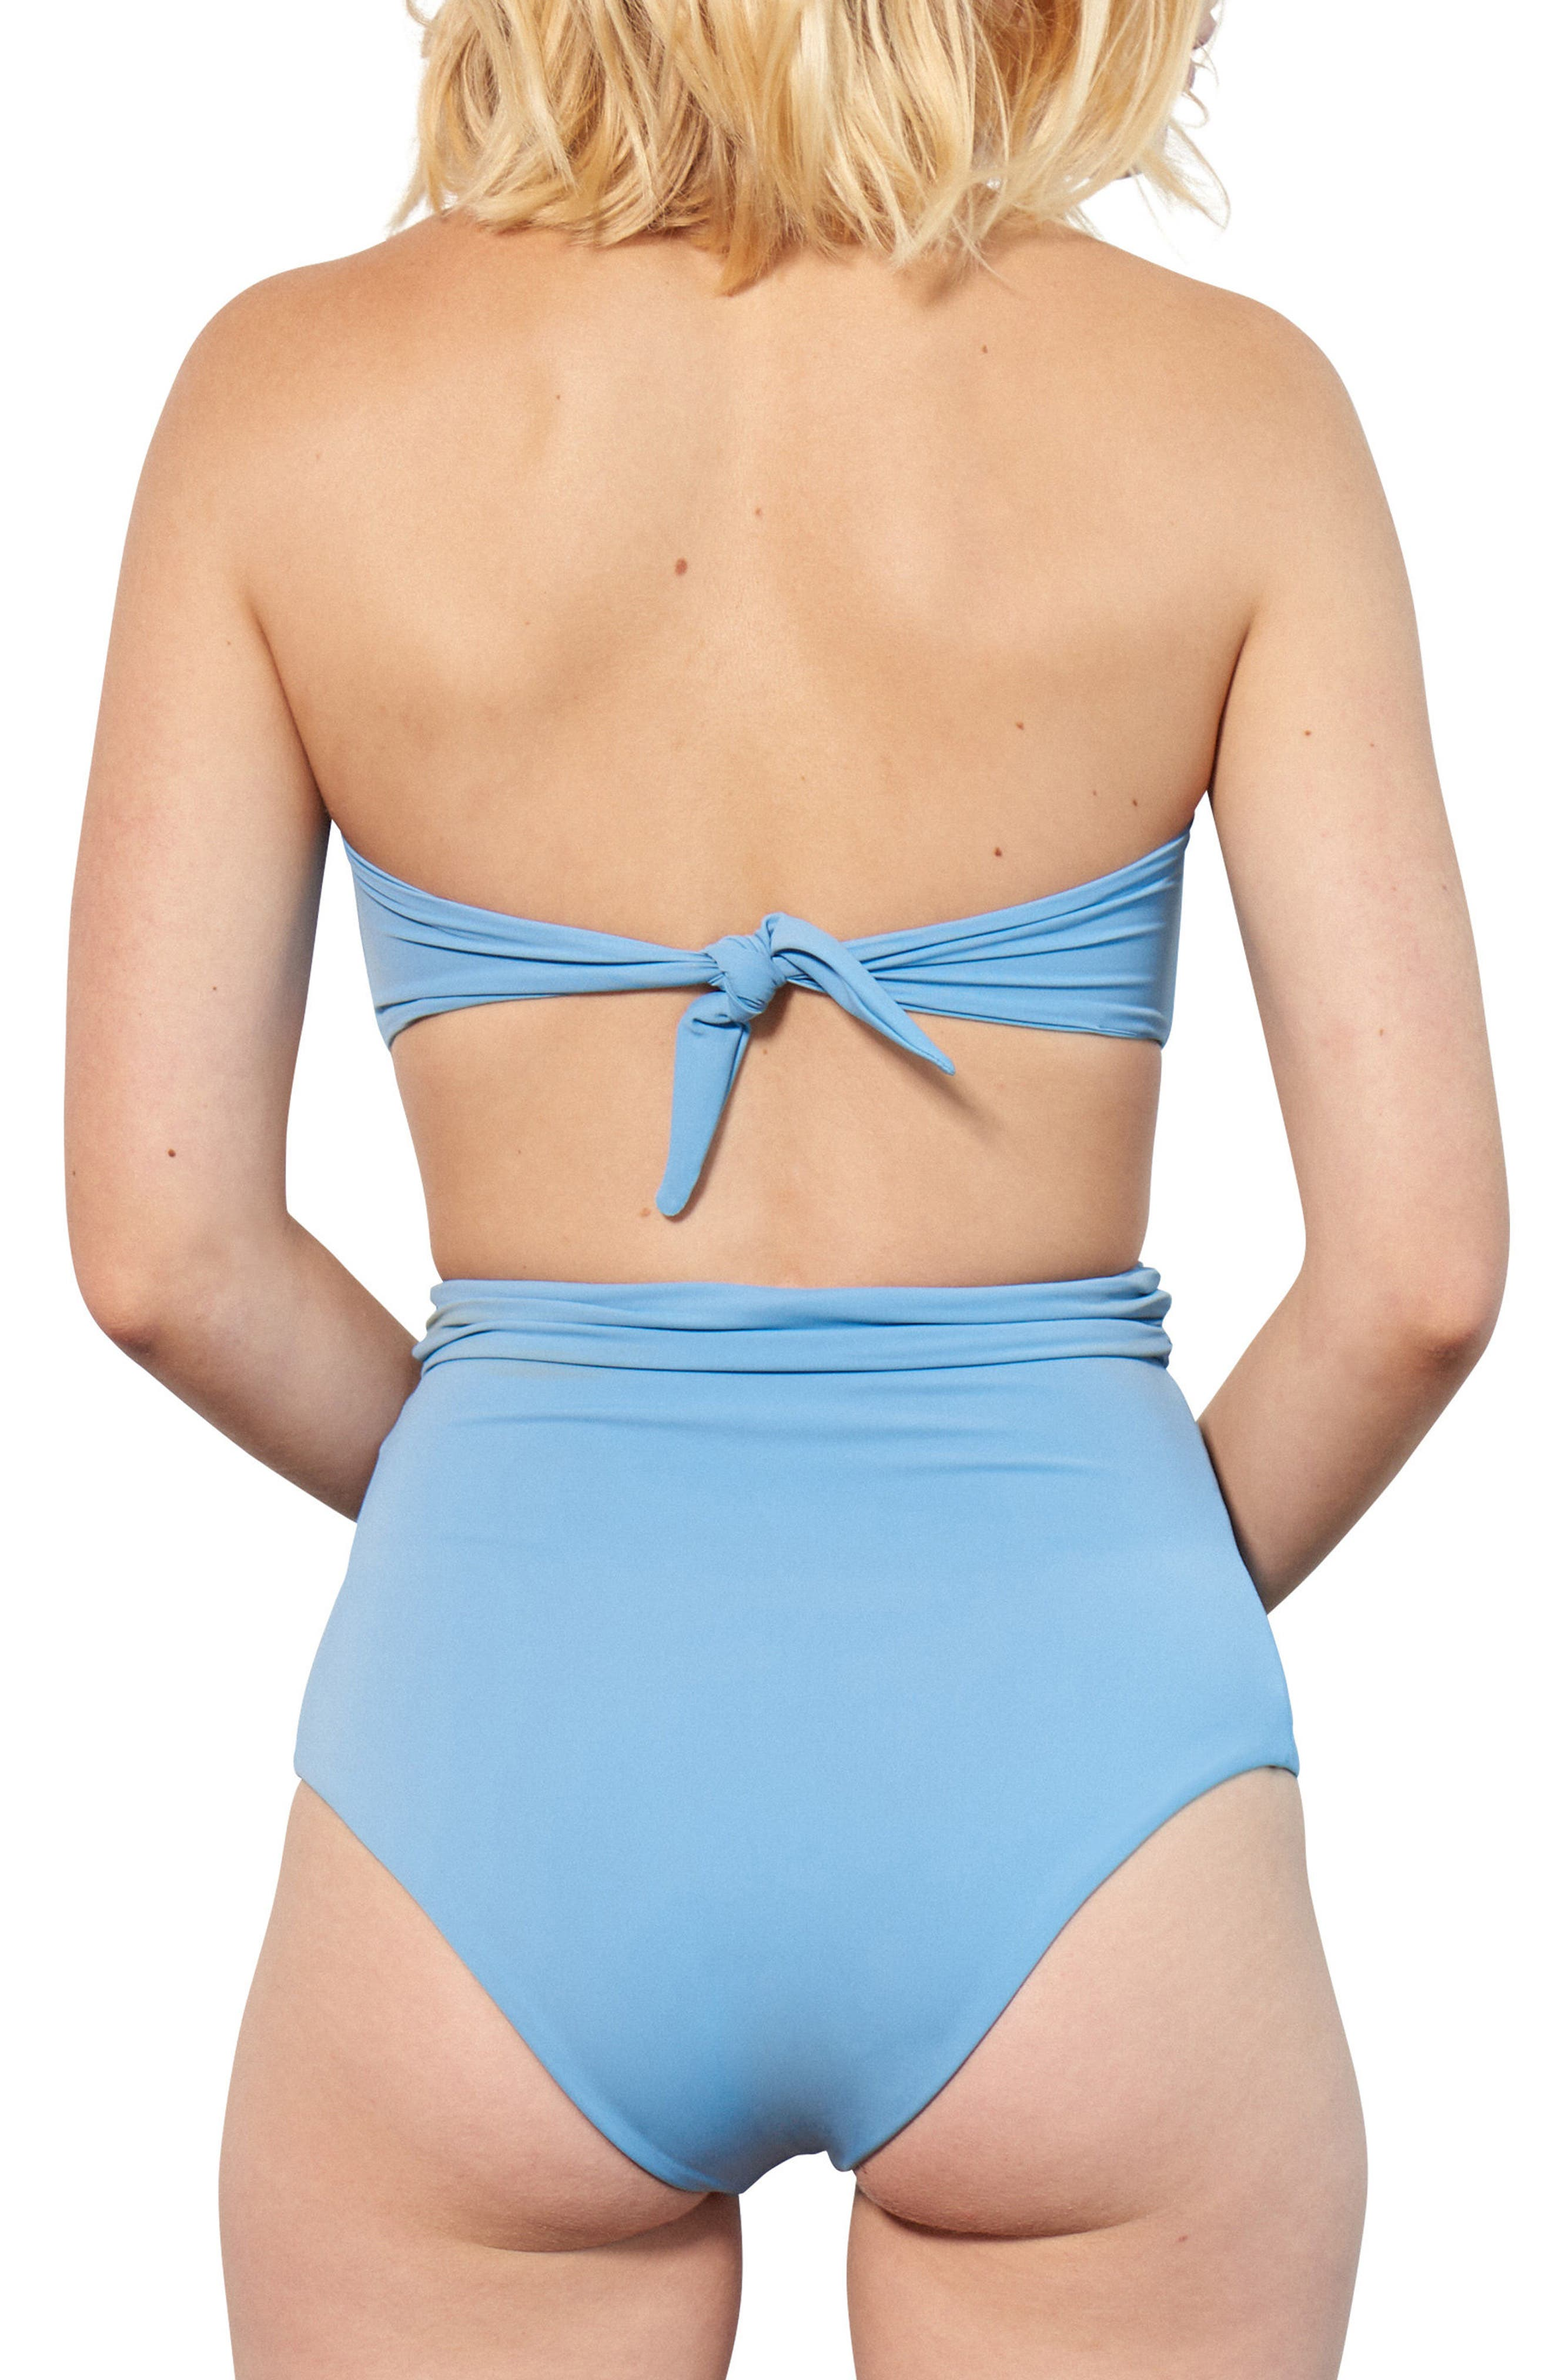 Chey Twist Bikini Top,                             Alternate thumbnail 4, color,                             427